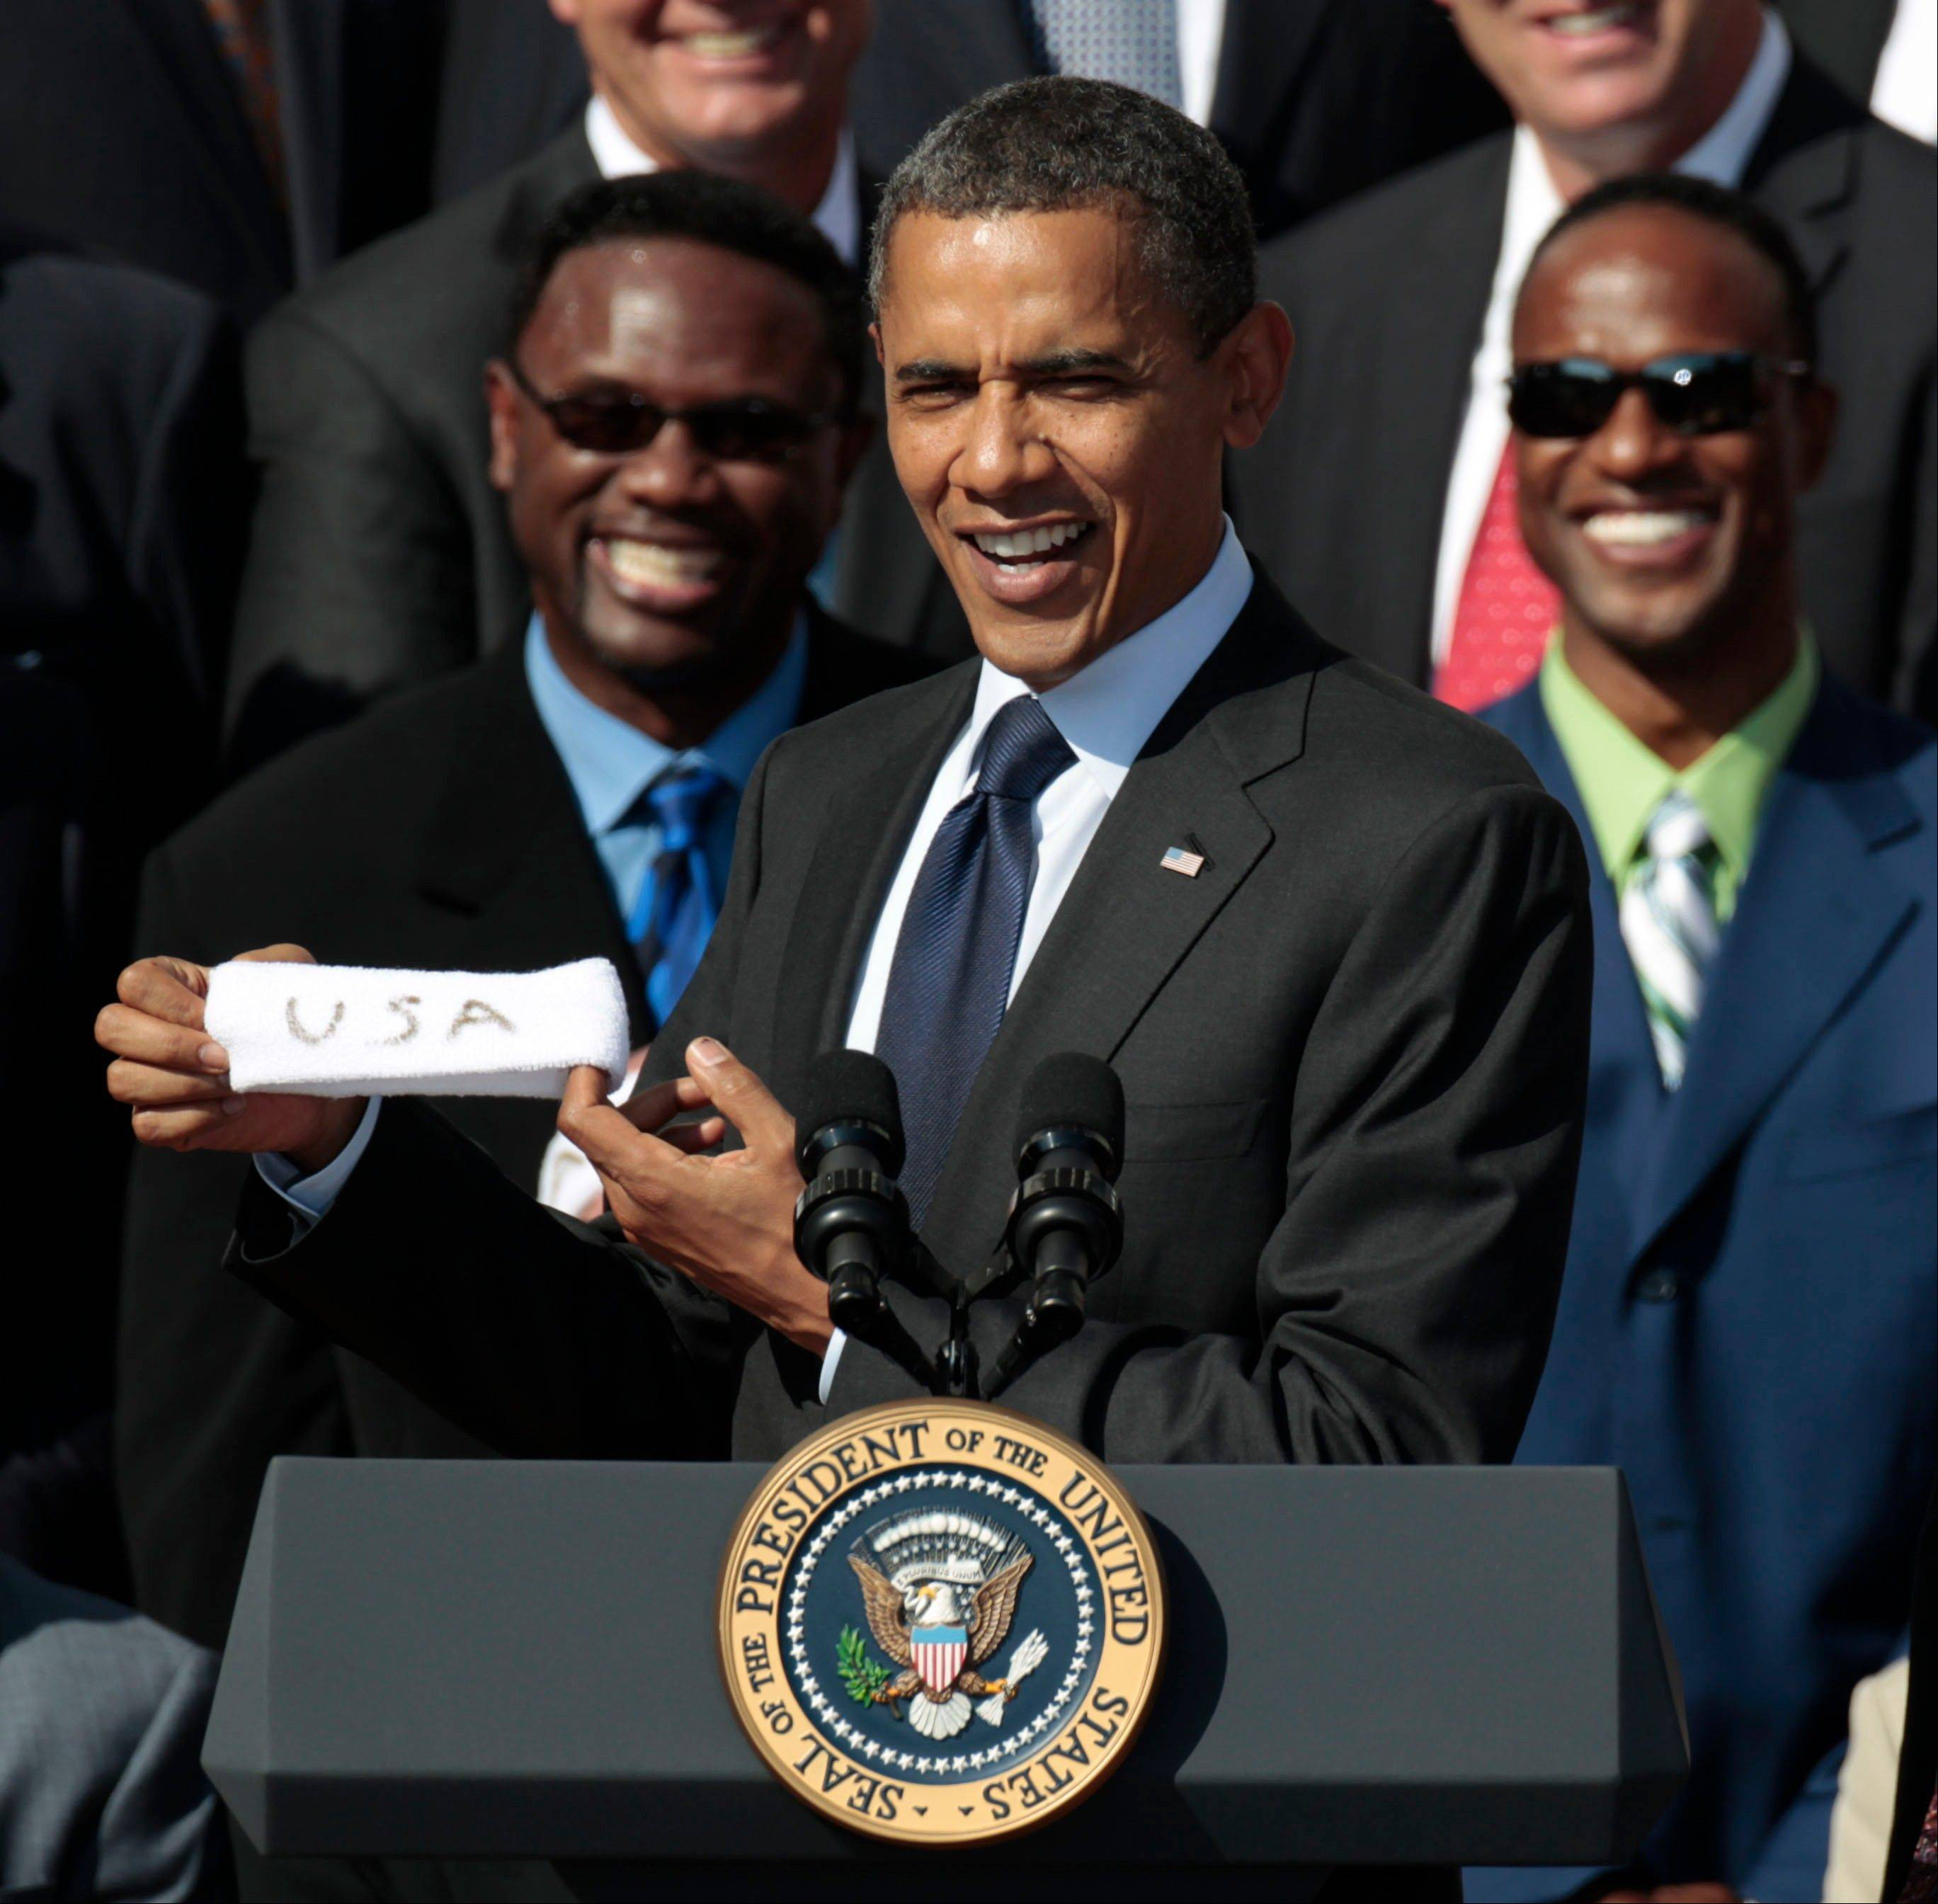 President Barack Obama holds up a headband given to him by former quarterback Jim McMahon, as he honors the 1985 Super Bowl XX Champions Chicago Bears football team during a ceremony on the South Lawn of the White House in Washington, Friday, Oct. 7, 2011.